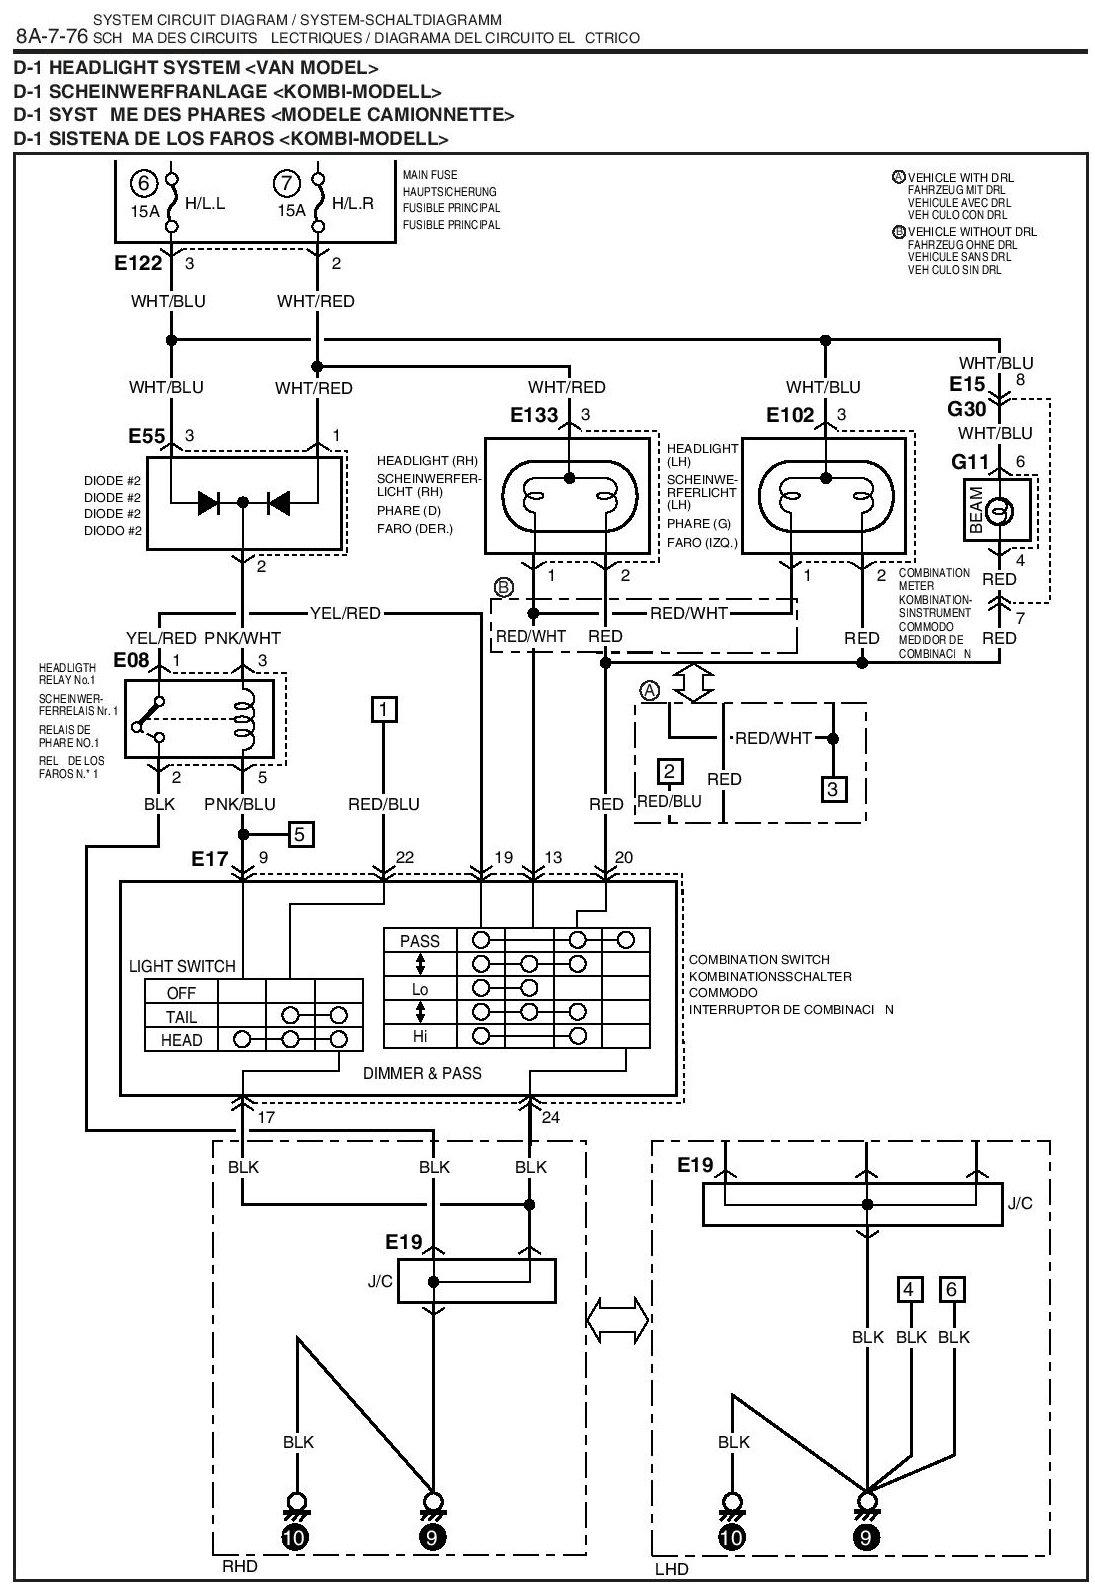 wiring diagram for spotlights 1973 honda cb450 led spotlight